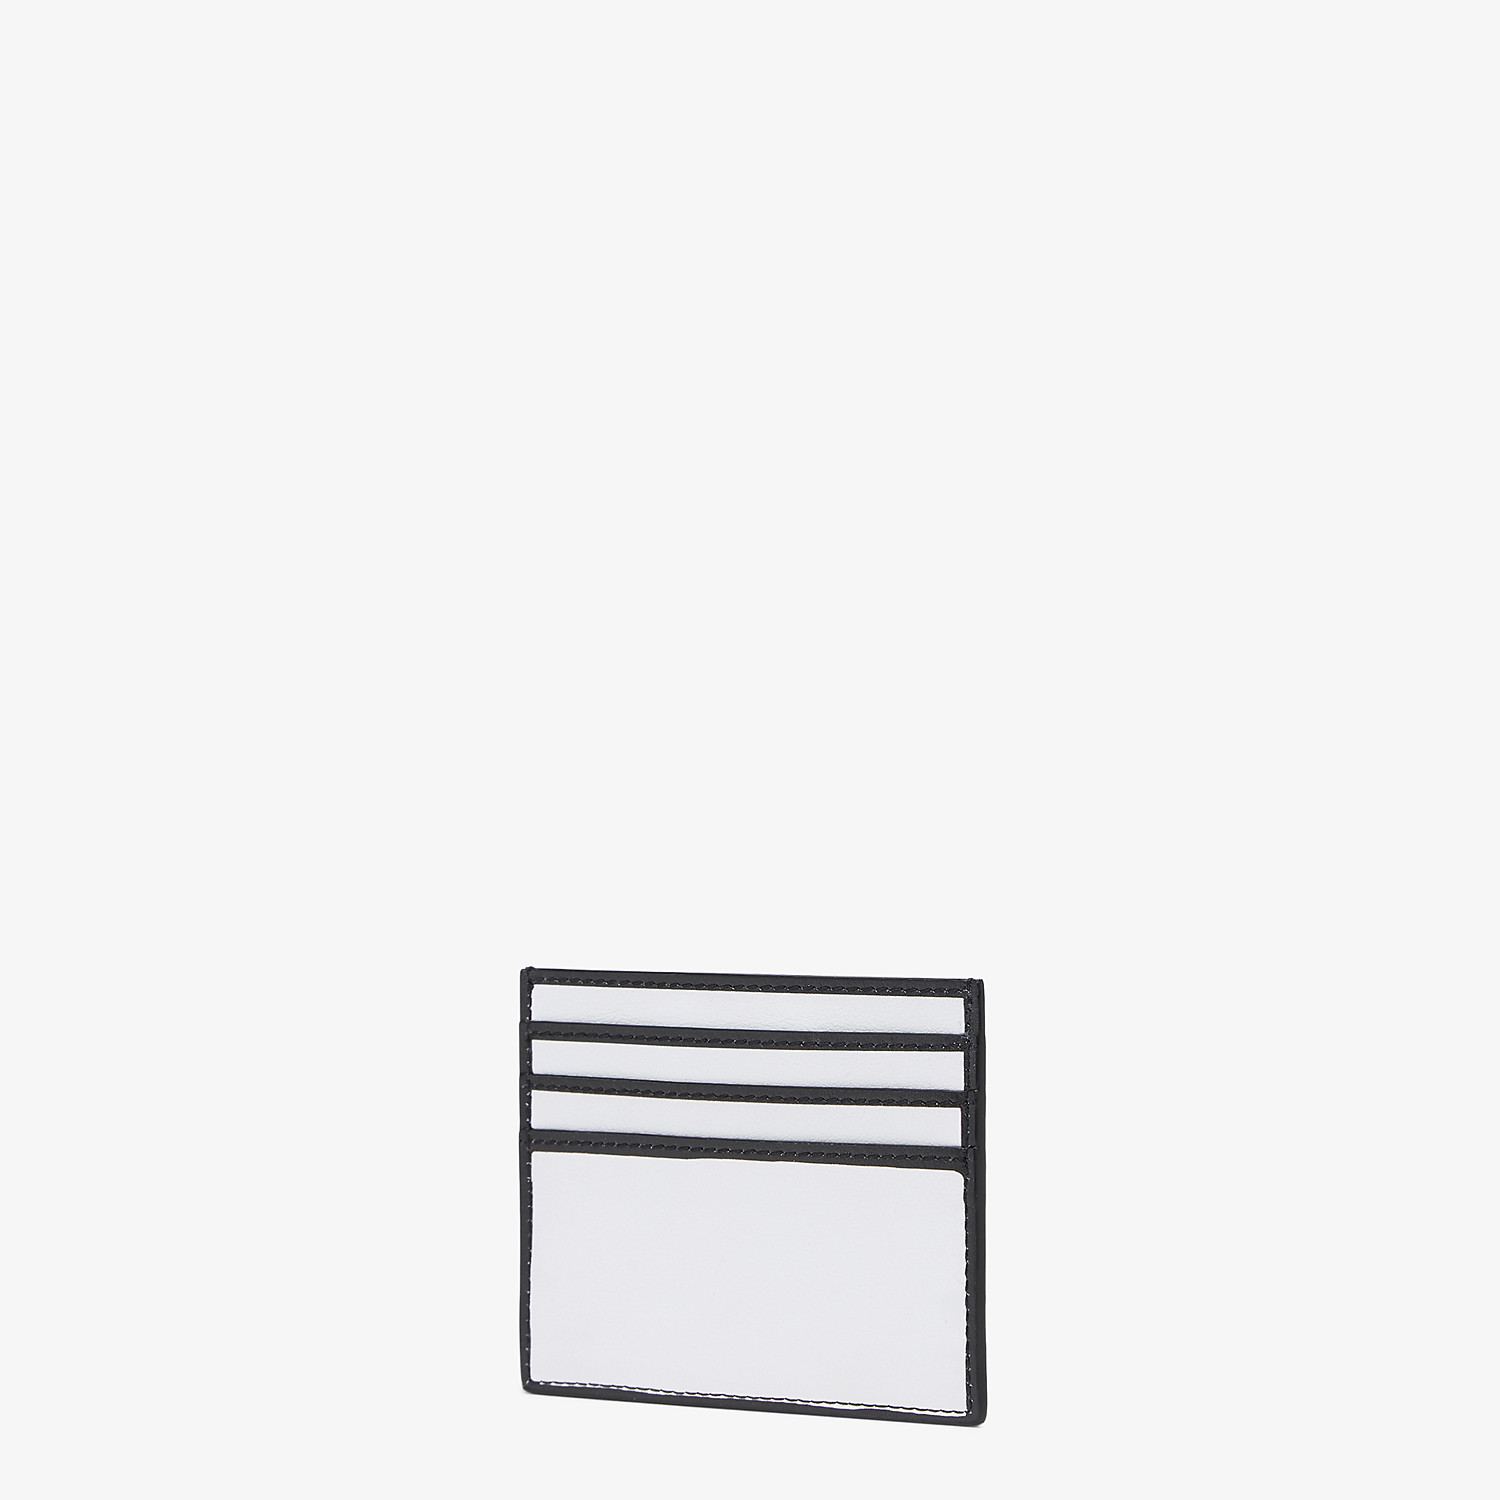 FENDI CARD HOLDER - Fendi Roma Joshua Vides leather card holder - view 2 detail